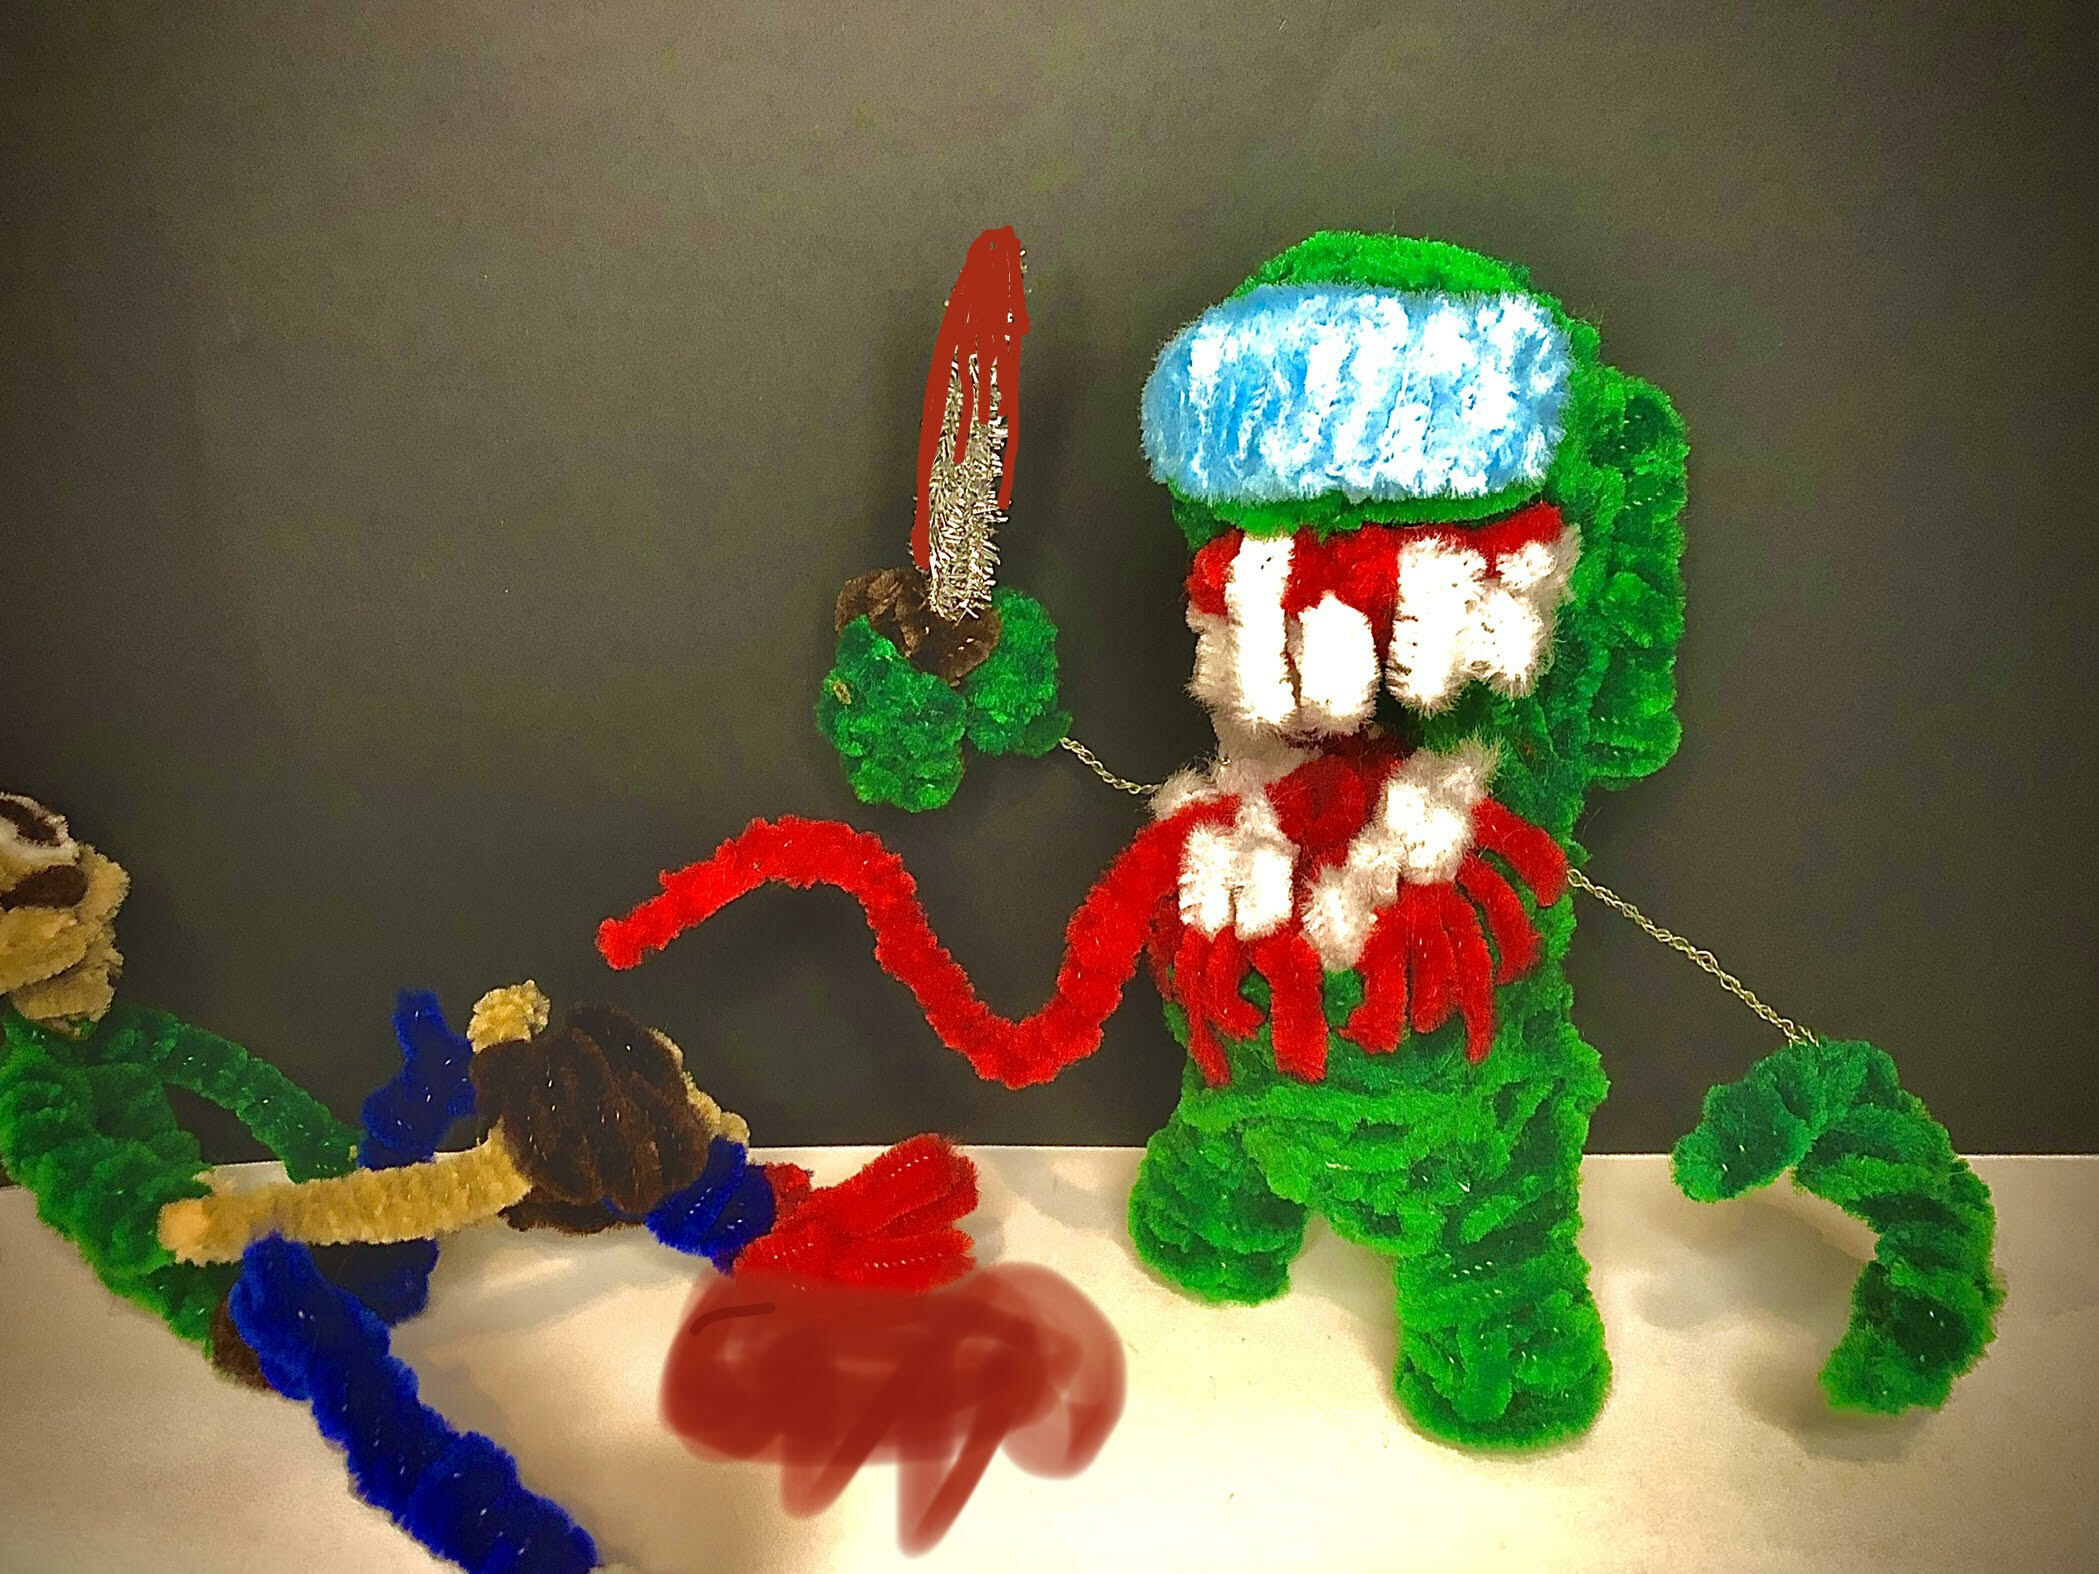 Sussy Impostor Among Us pipe cleaner